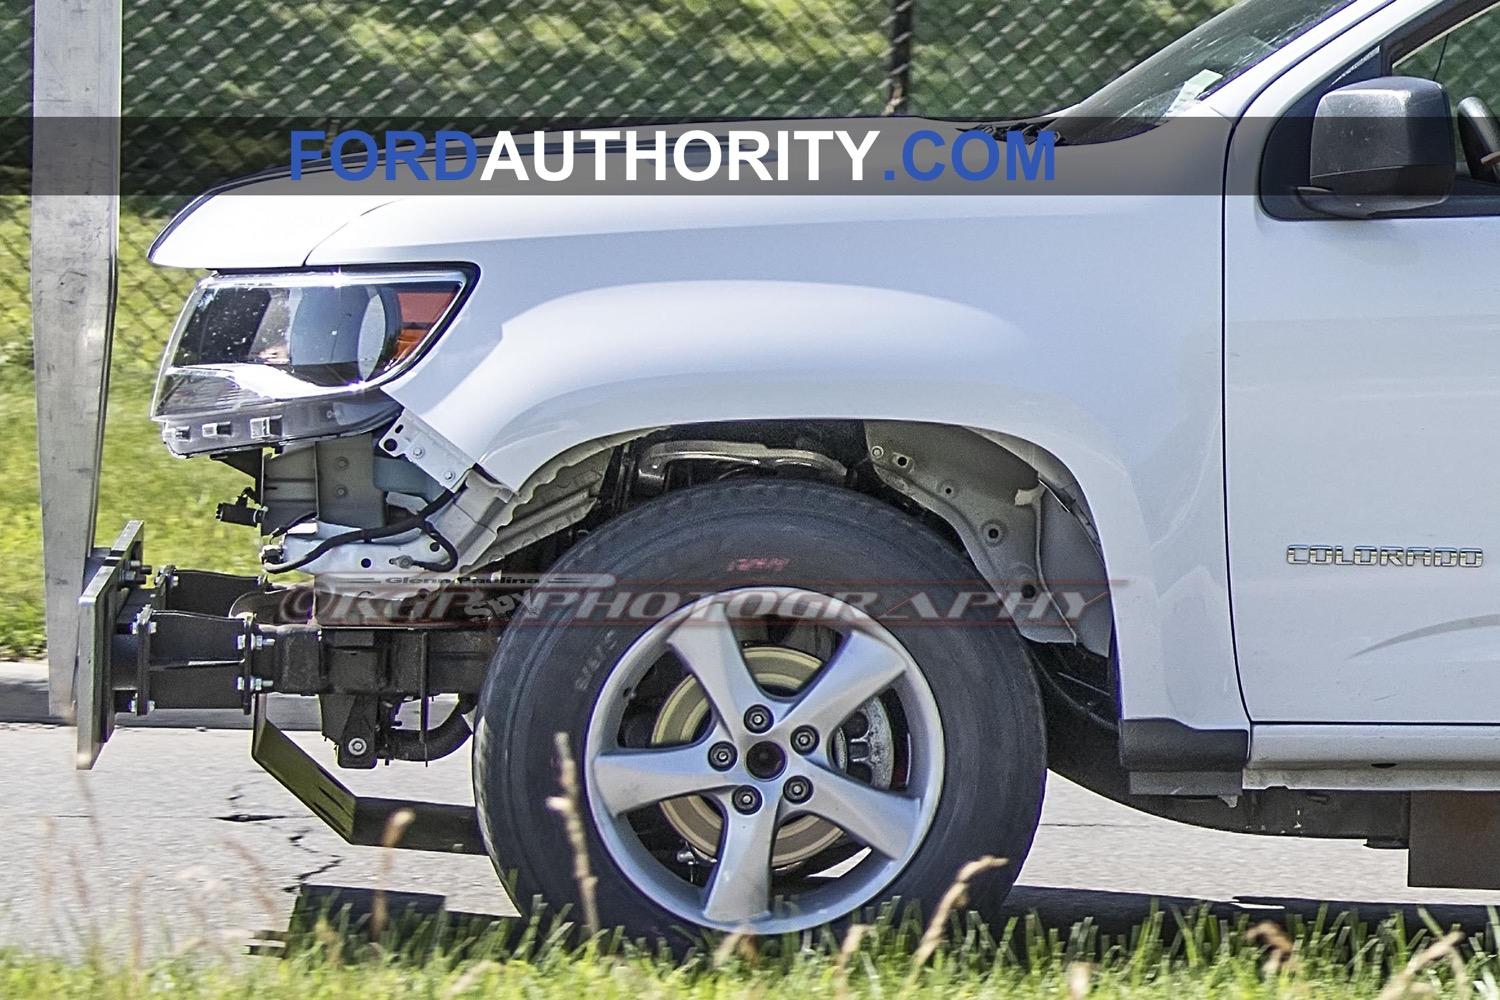 ial-Ford-Bronco-or-Ford-Courier-Pickup-Mule-with-Chevrolet-Colorado-body-Spy-Shots-July-2019-012.jpg